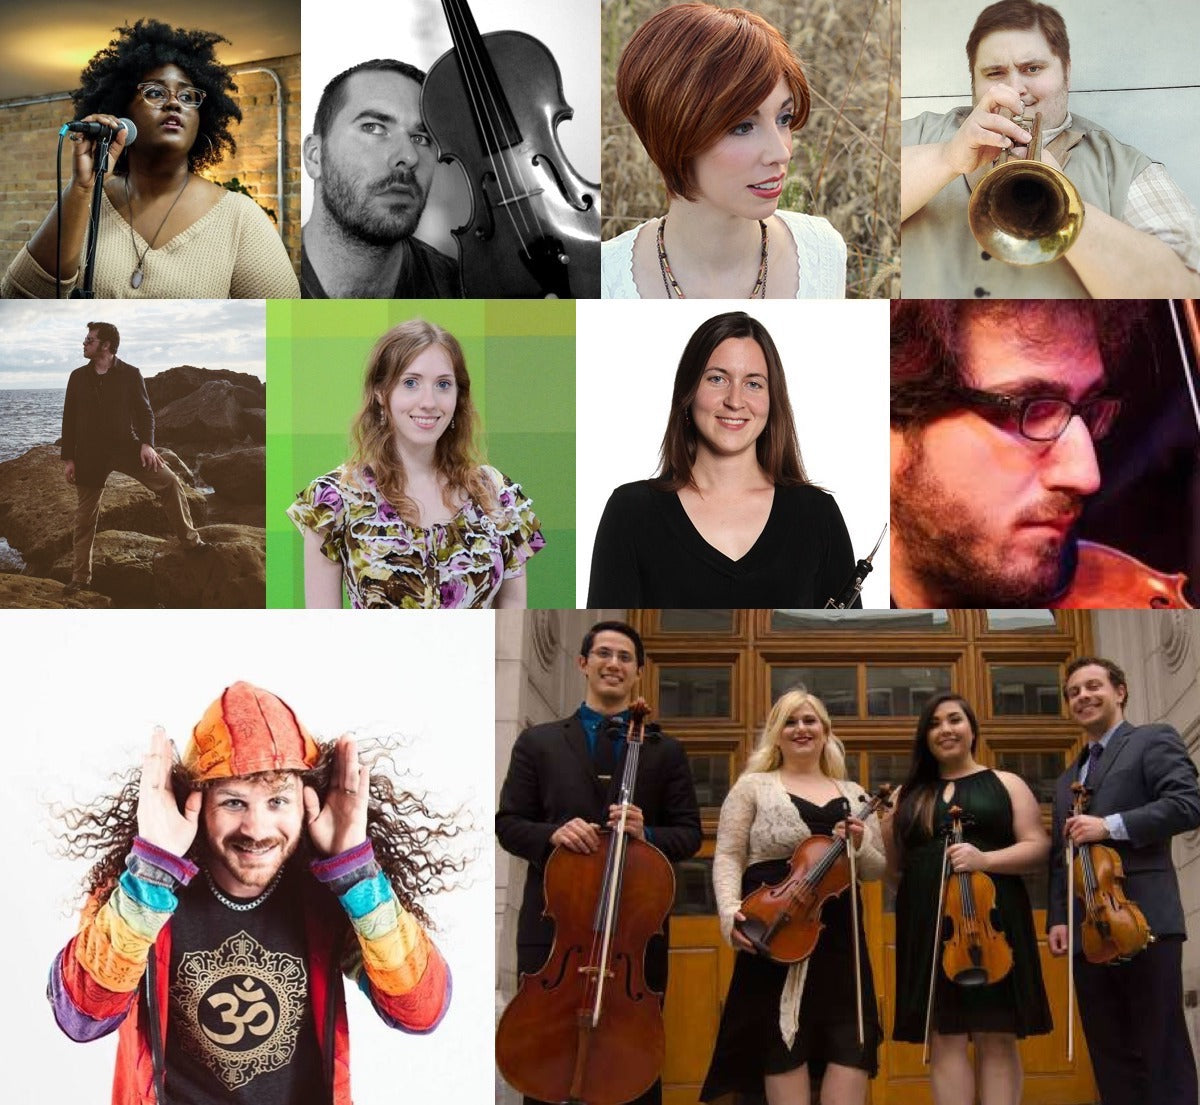 (top row from left) Akenya, Jeff Ball, Jillian Aversa and John Robert Matz; (middle row) Jose Daniel Ruiz, May Claire La Plante, Kristin Naigus and Max Wolpert; (bottom row) Joshua Du Chene and the Videri String Quartet)